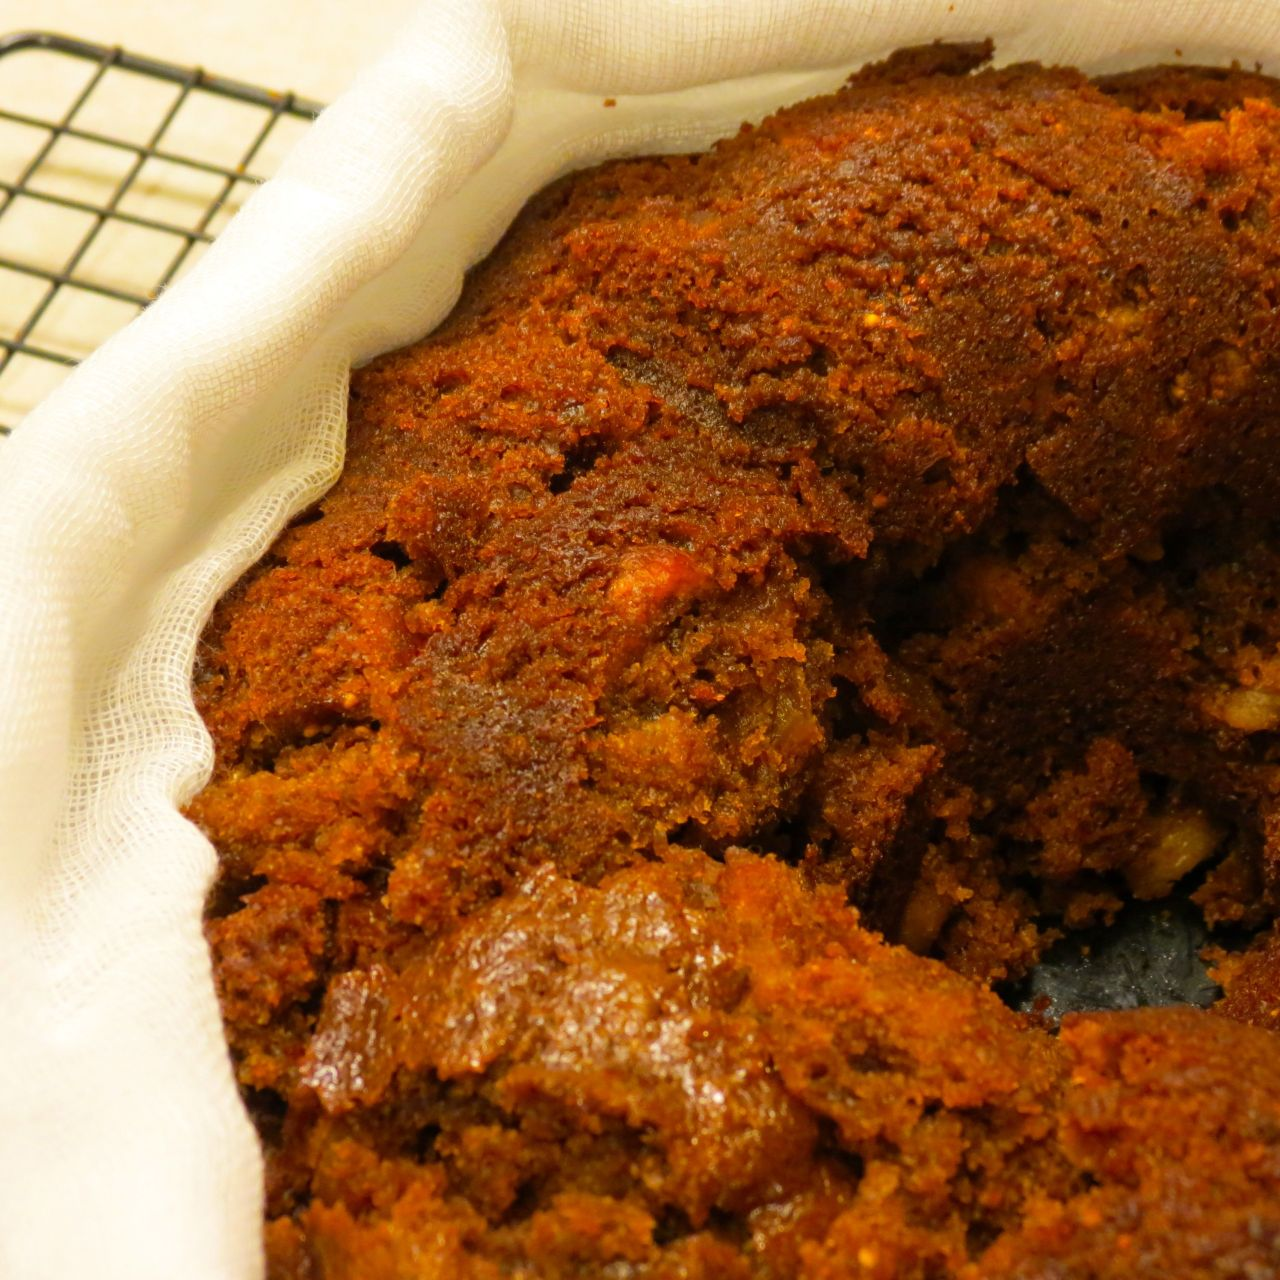 Figgy Pudding Wrapped in Cheese cloth